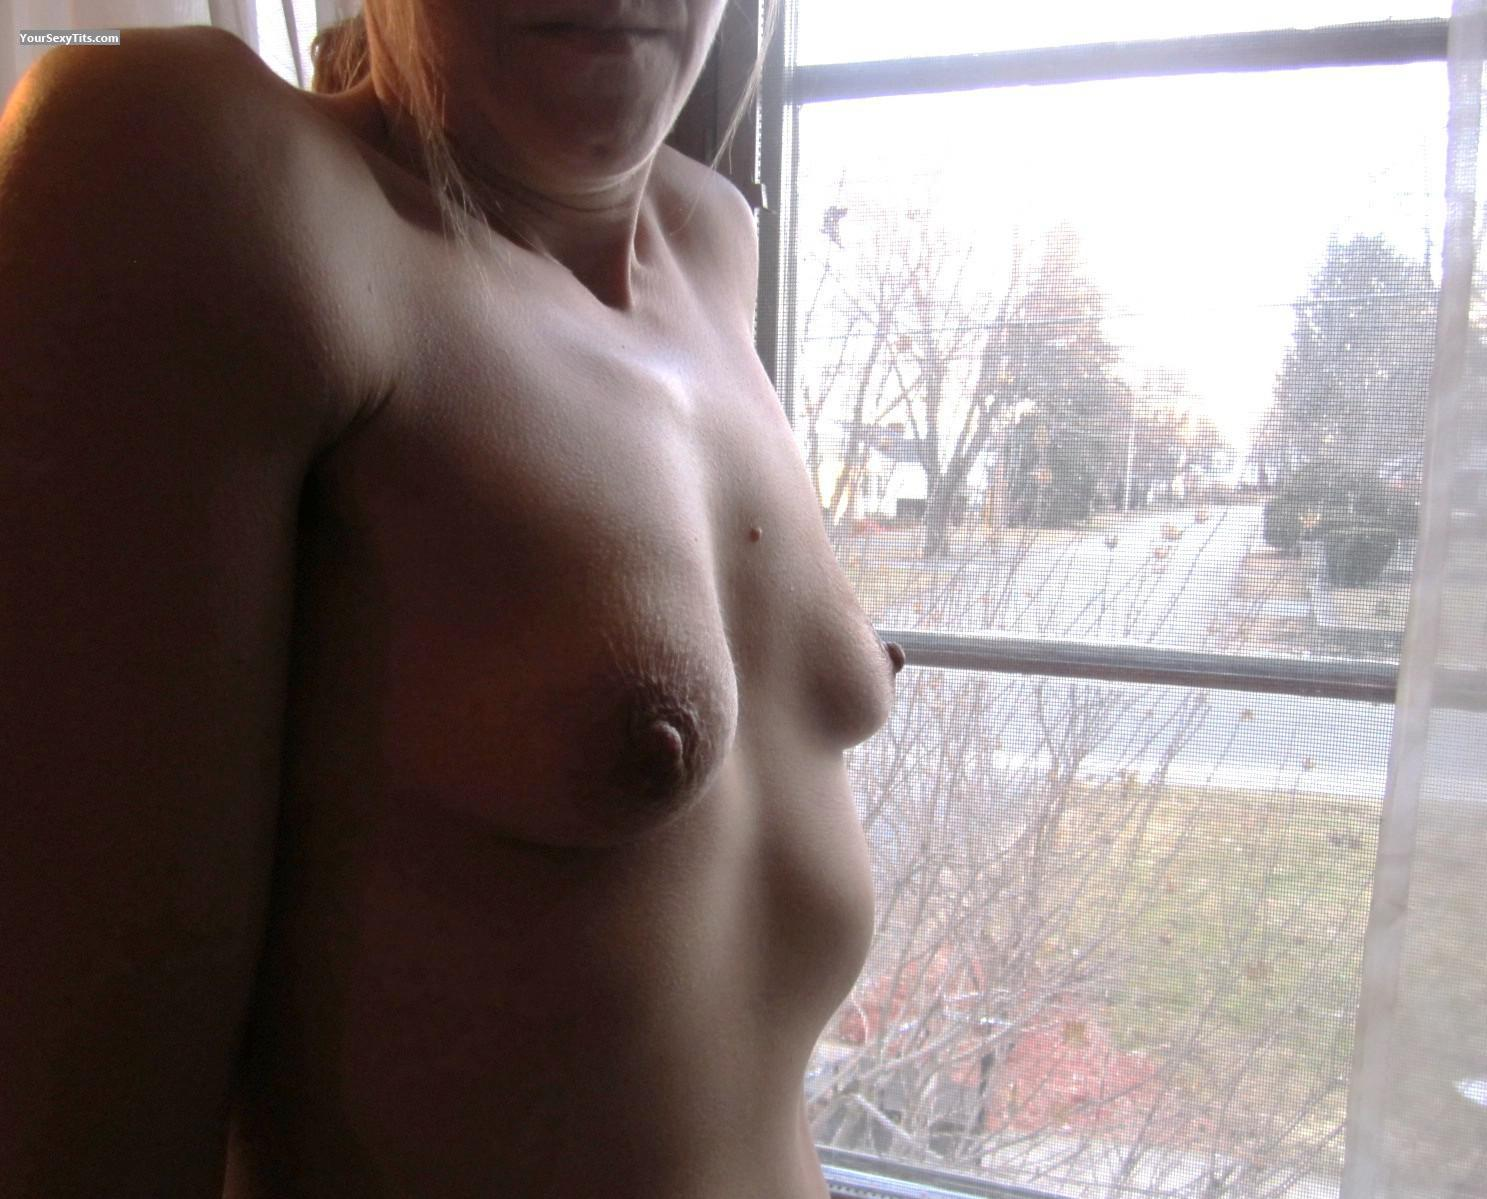 Very small Tits Of My Wife Crberg